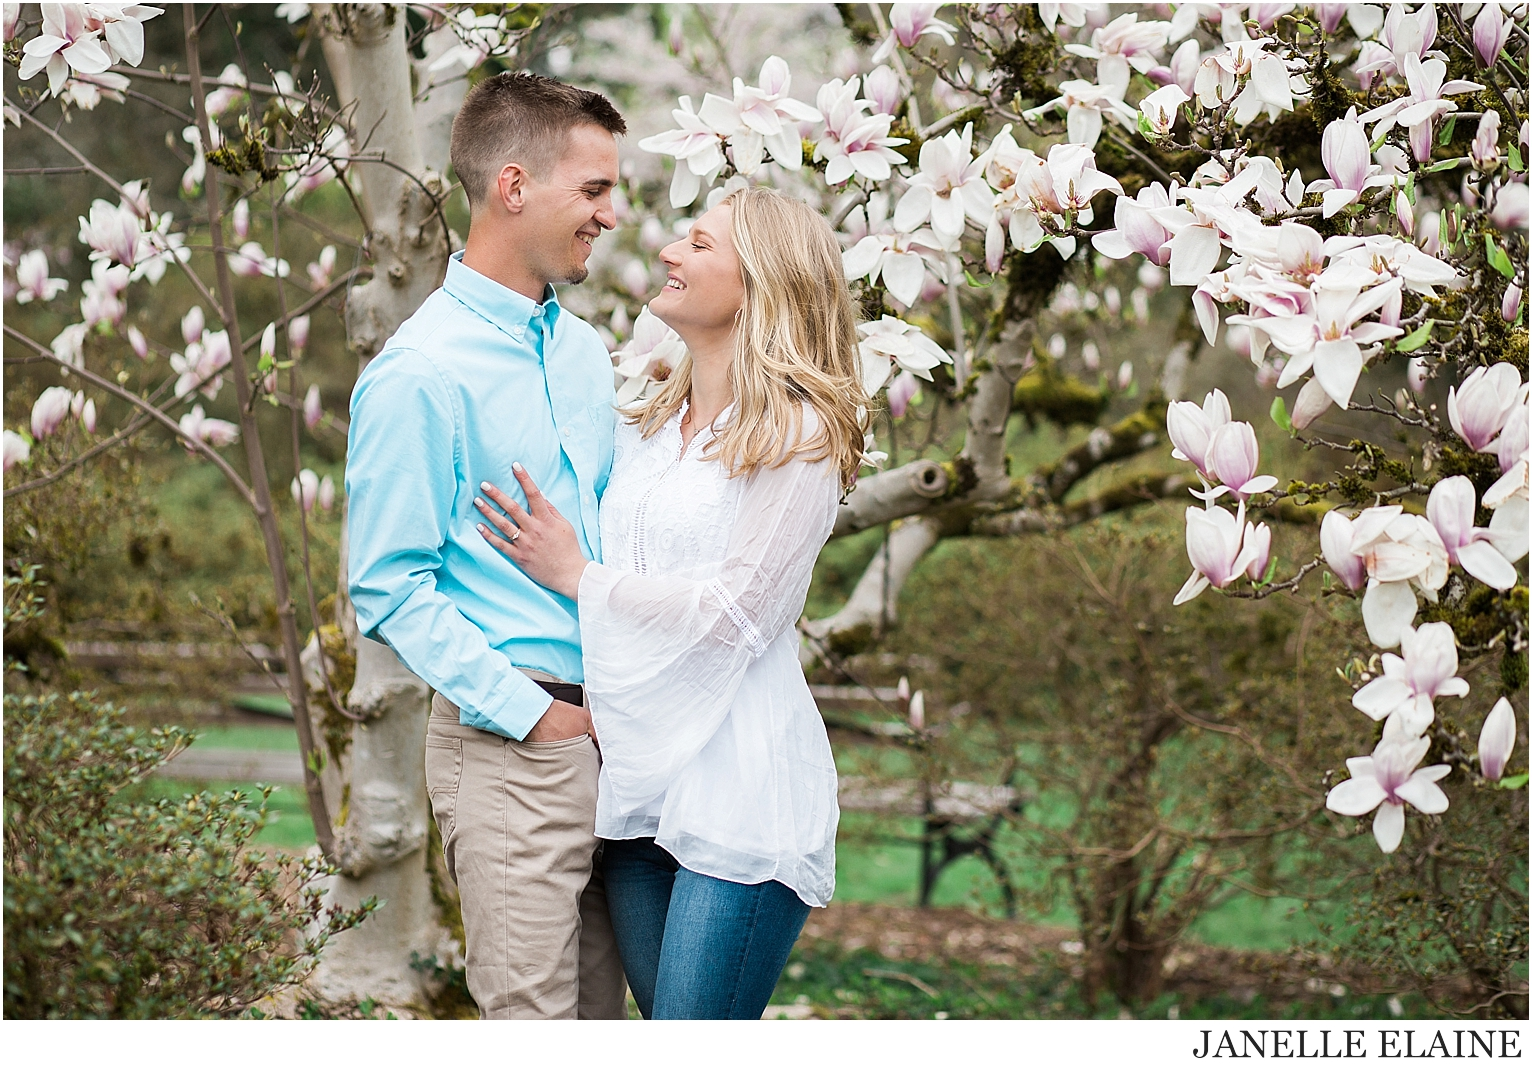 tricia and nate engagement photos-janelle elaine photography-153.jpg